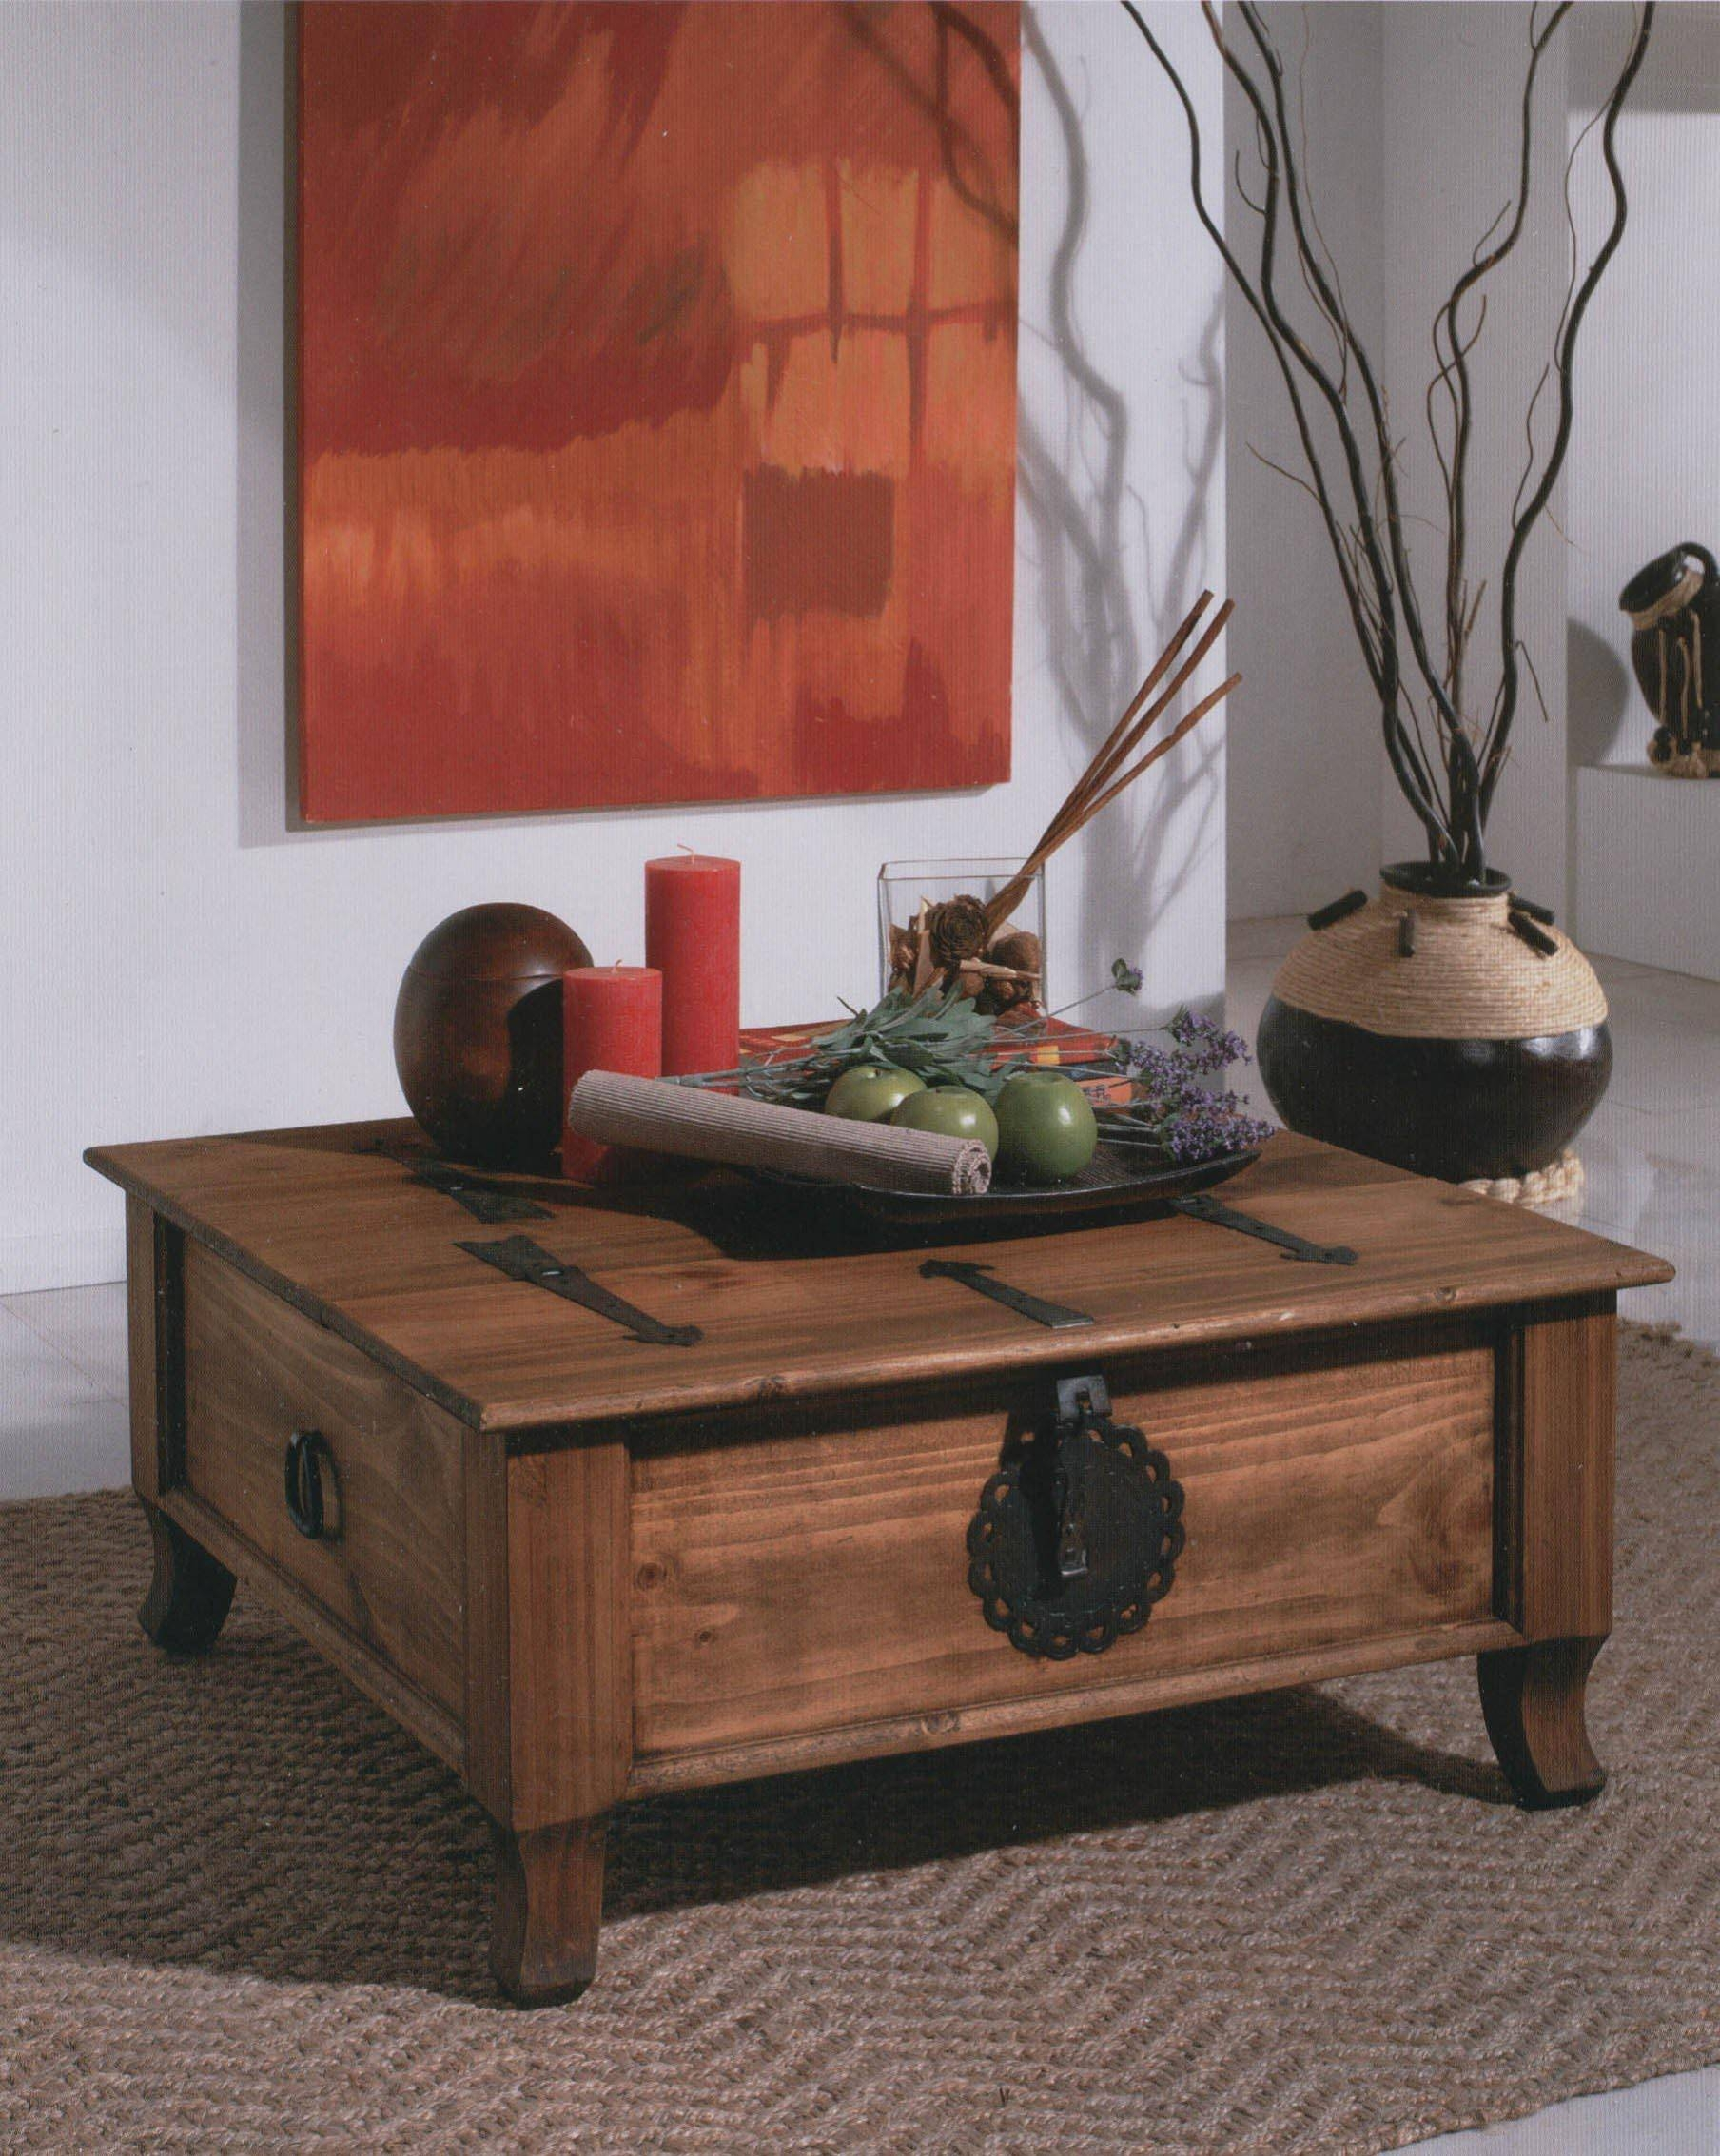 Start Making Chest Coffee Table | Coffee Table Design Ideas intended for Old Trunks as Coffee Tables (Image 23 of 30)